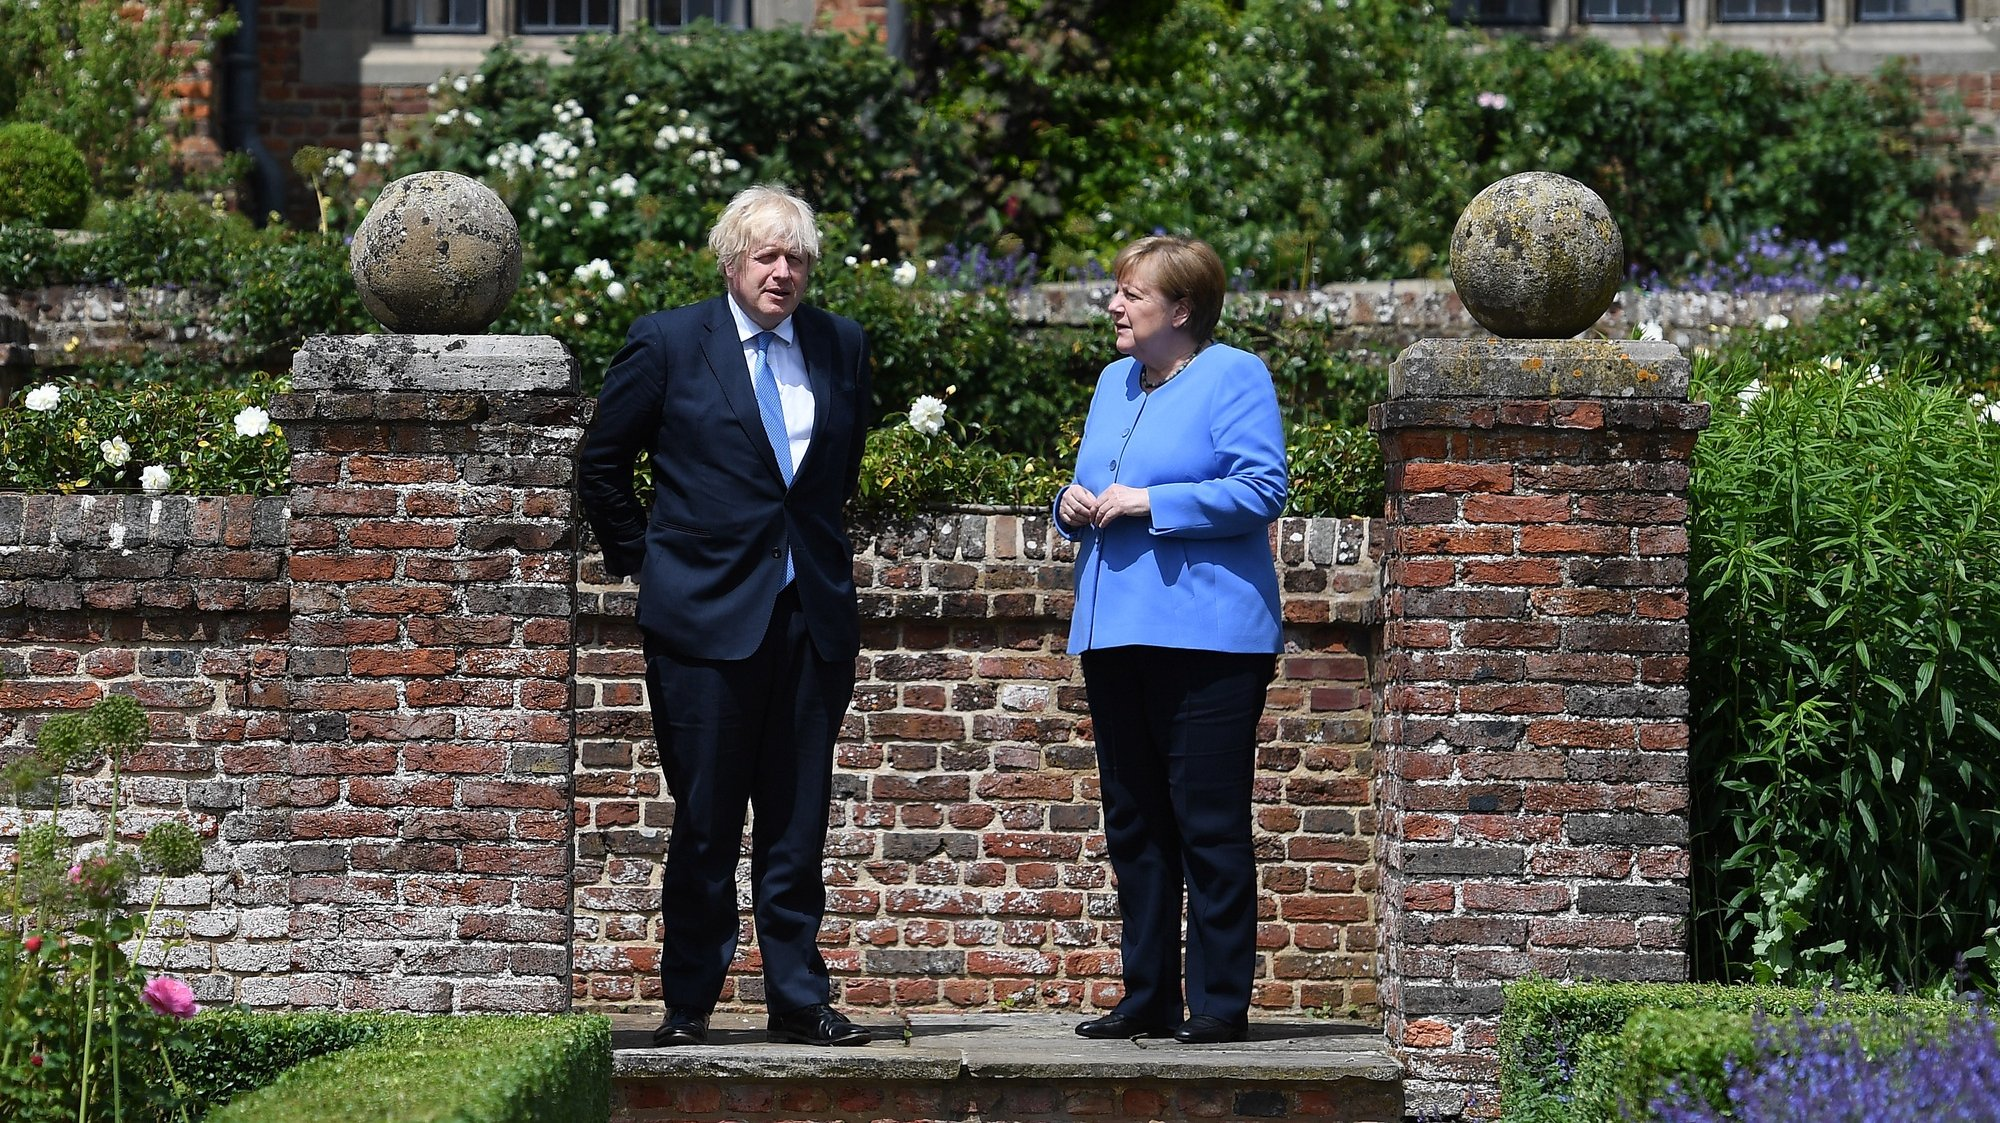 epa09317444 British Prime Minister Boris Johnson (L) with German Chancellor Angela Merkel (R) in the rose garden at the Prime Minister's country residence at Chequers, Buckinghamshire, Britain, 02 July 2021. The two nations have agreed a post Brexit  joint declaration on foreign and security policy cooperation. The bilateral agreement is the first to be struck between London and Berlin on foreign and security policy issues.  EPA/ANDY RAIN / POOL Pool